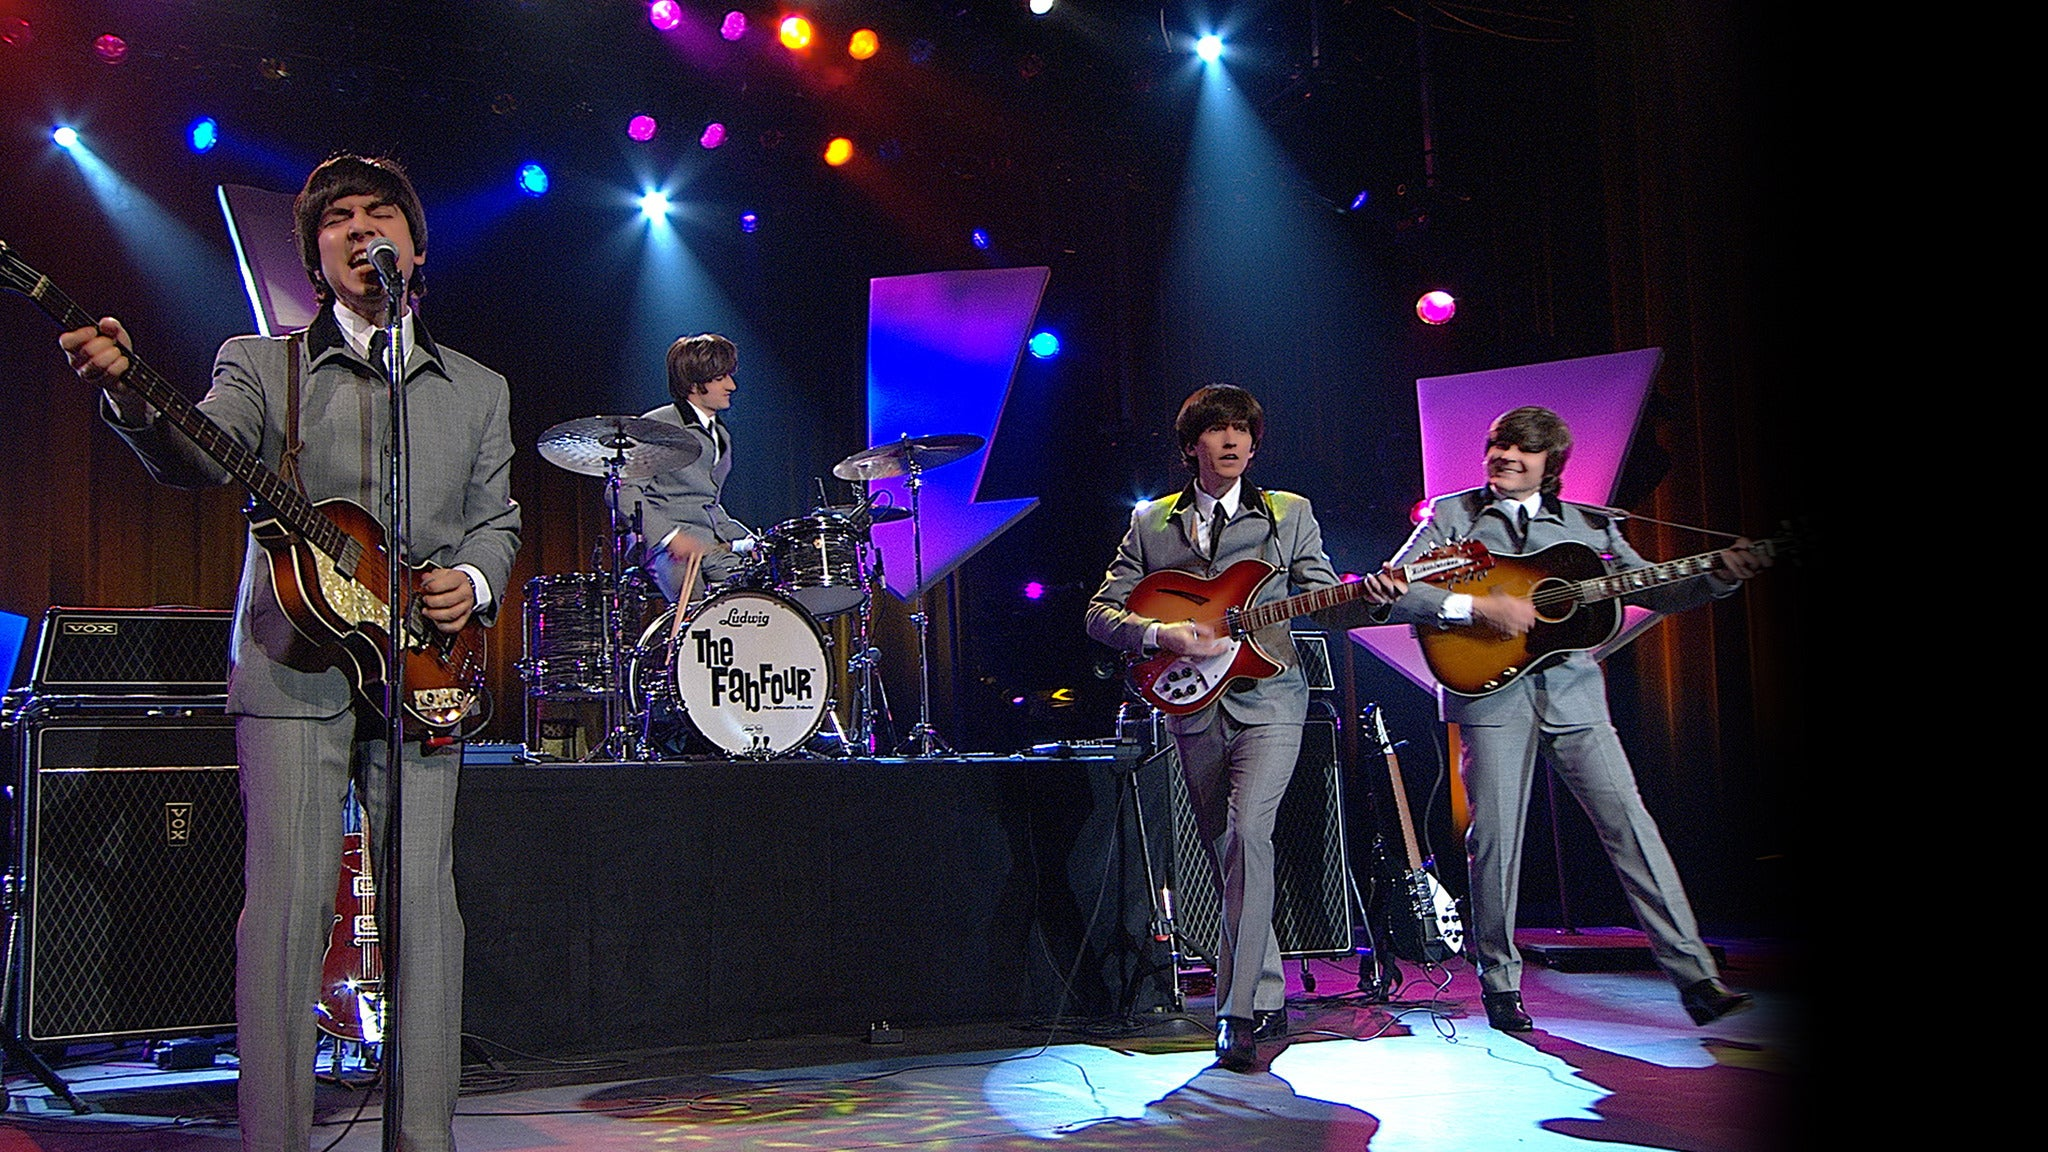 The Fab Four at Star Plaza Theatre - Merrillville, IN 46410